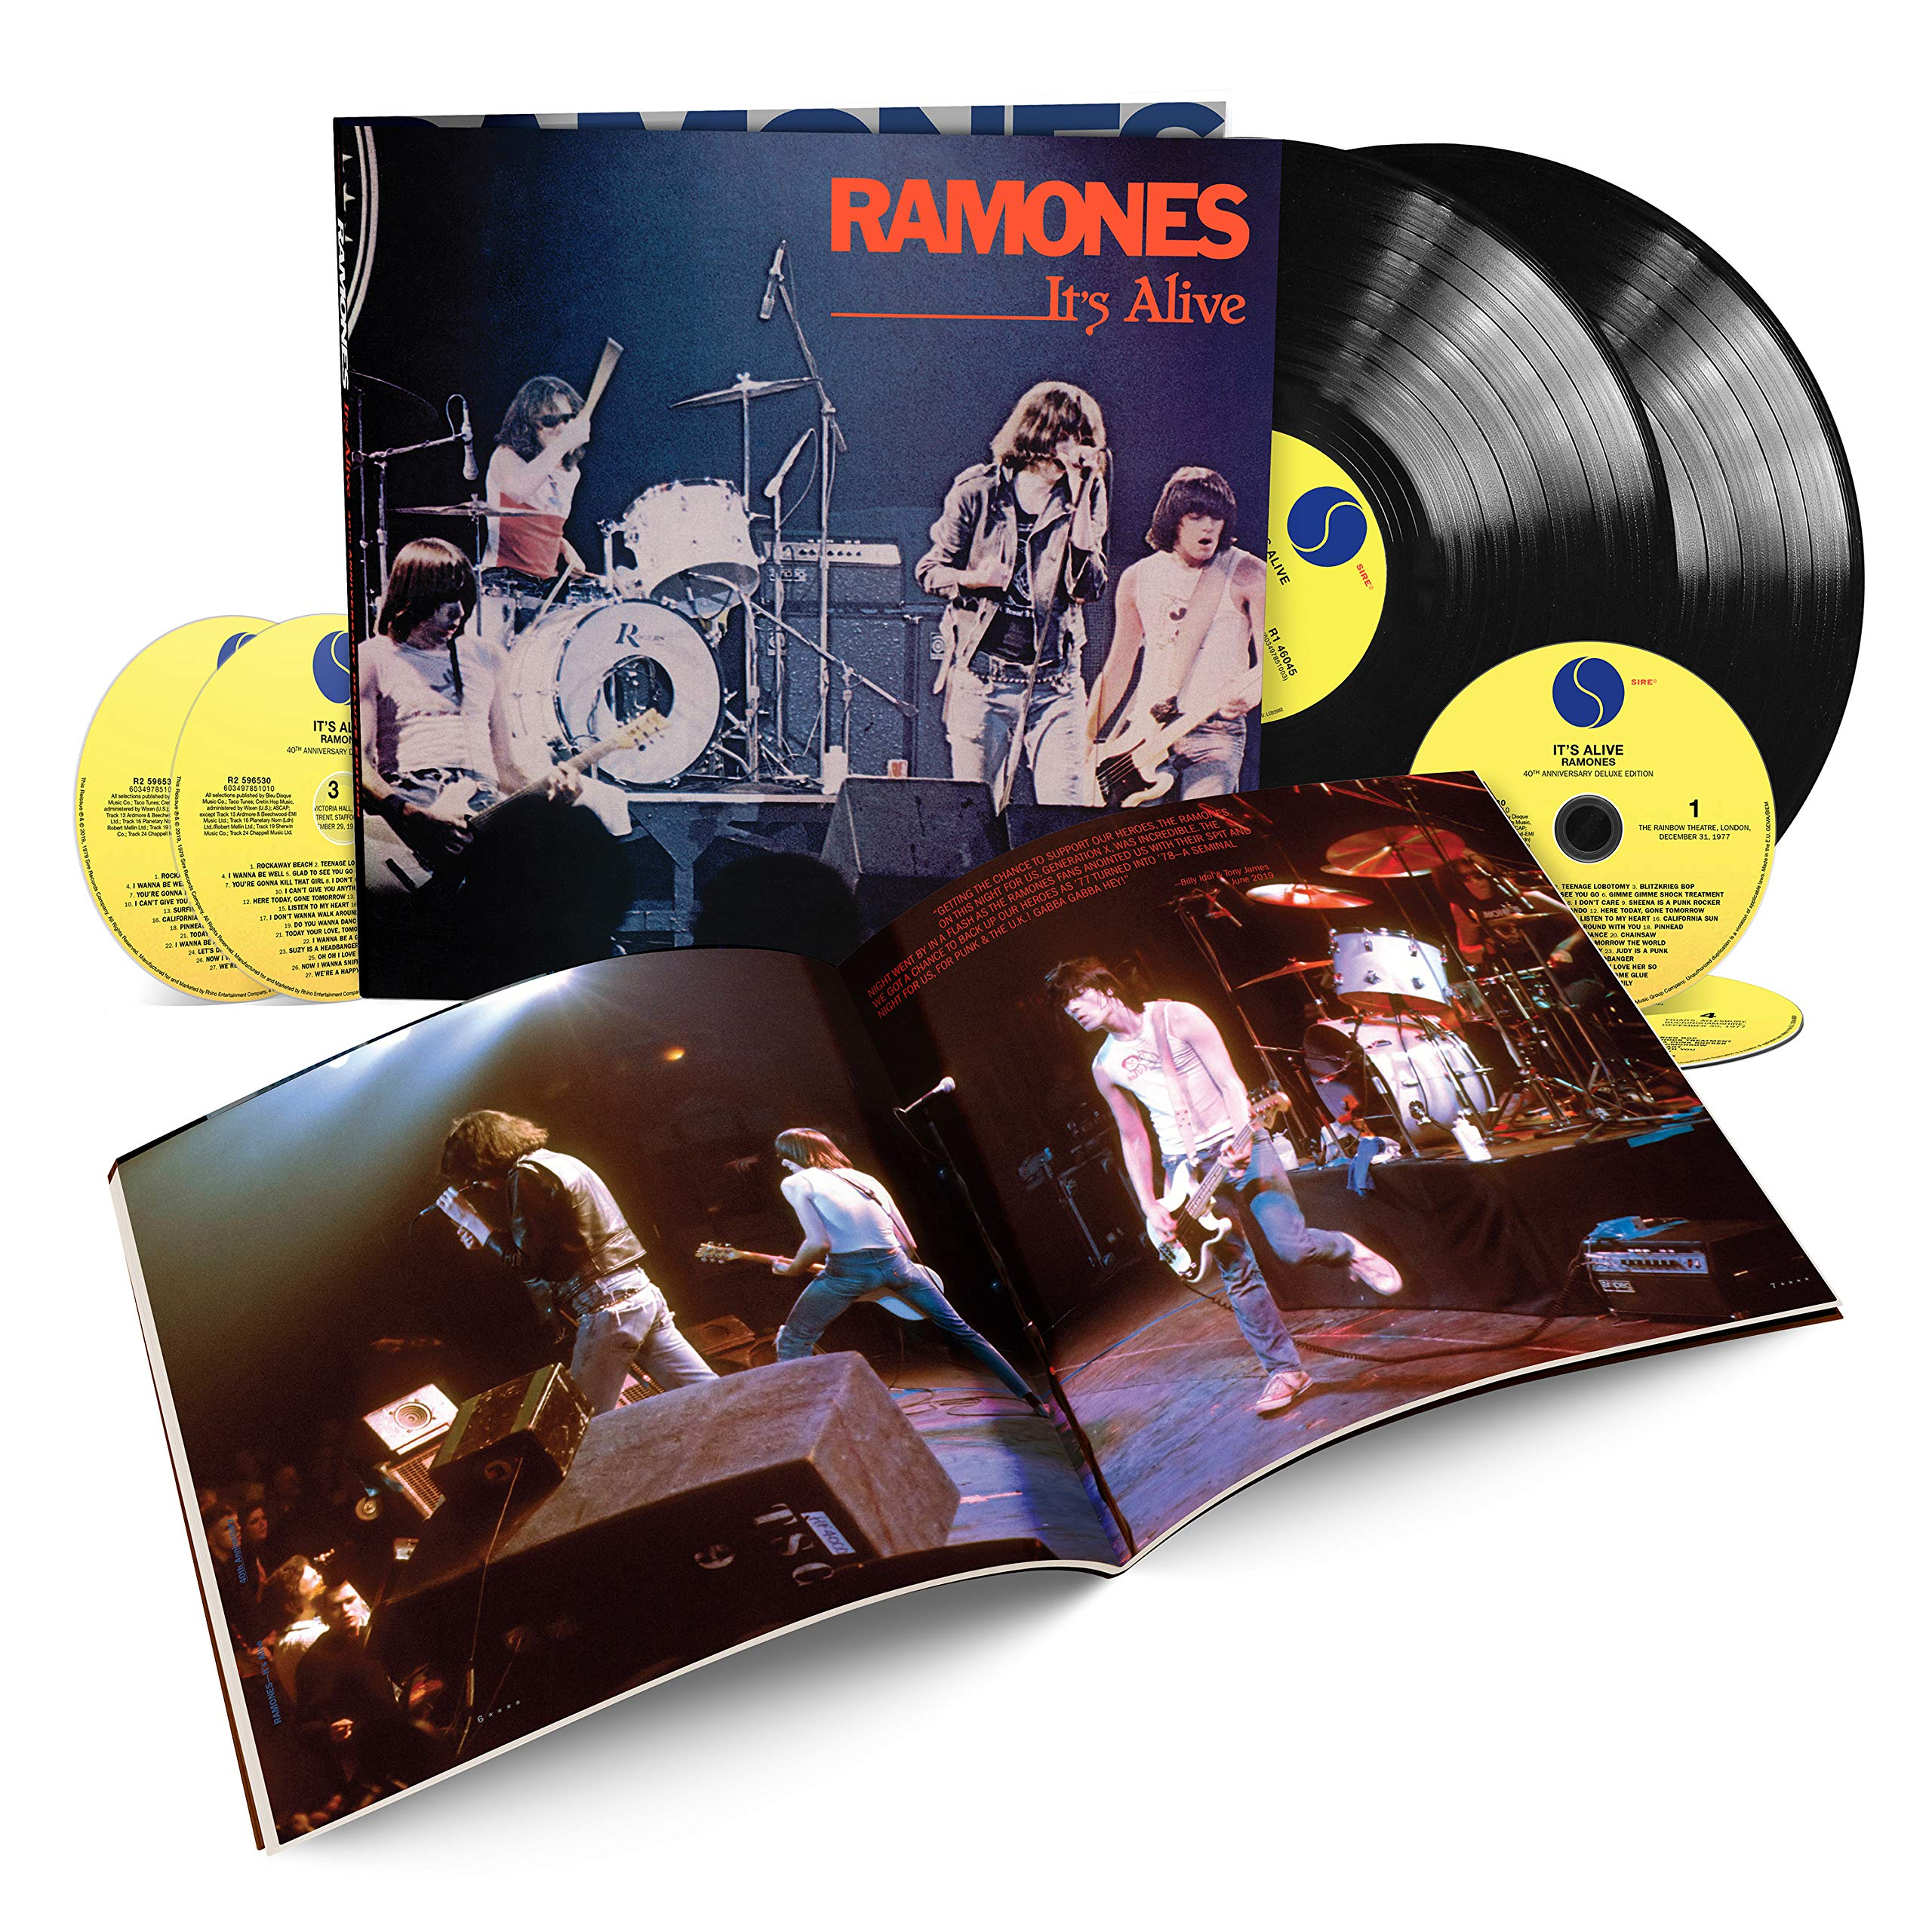 It's Alive (40th Anniversary Deluxe Edition) (4CD/2LP) by Rhino/Warner Bros.